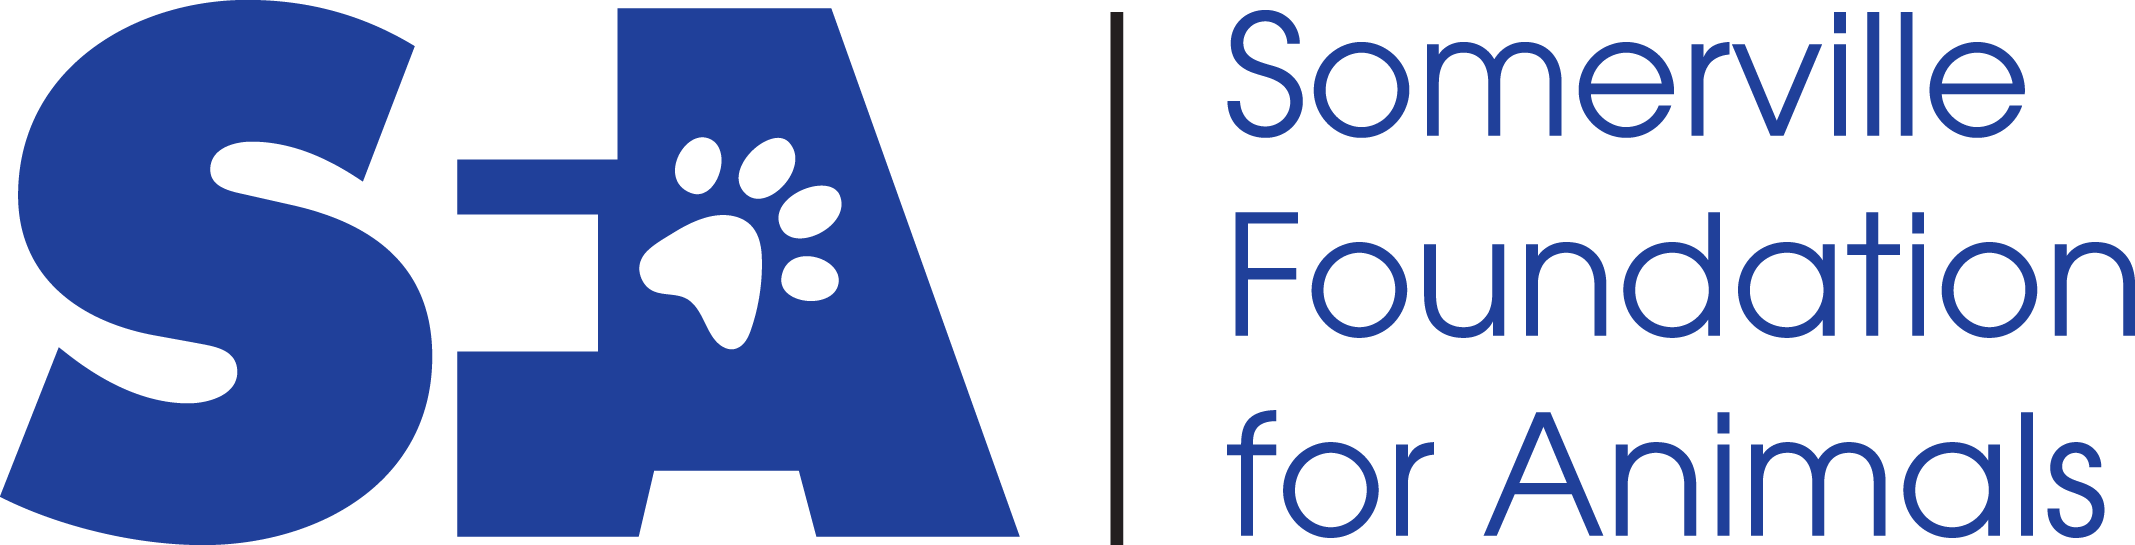 Somerville Foundation for Animals logo